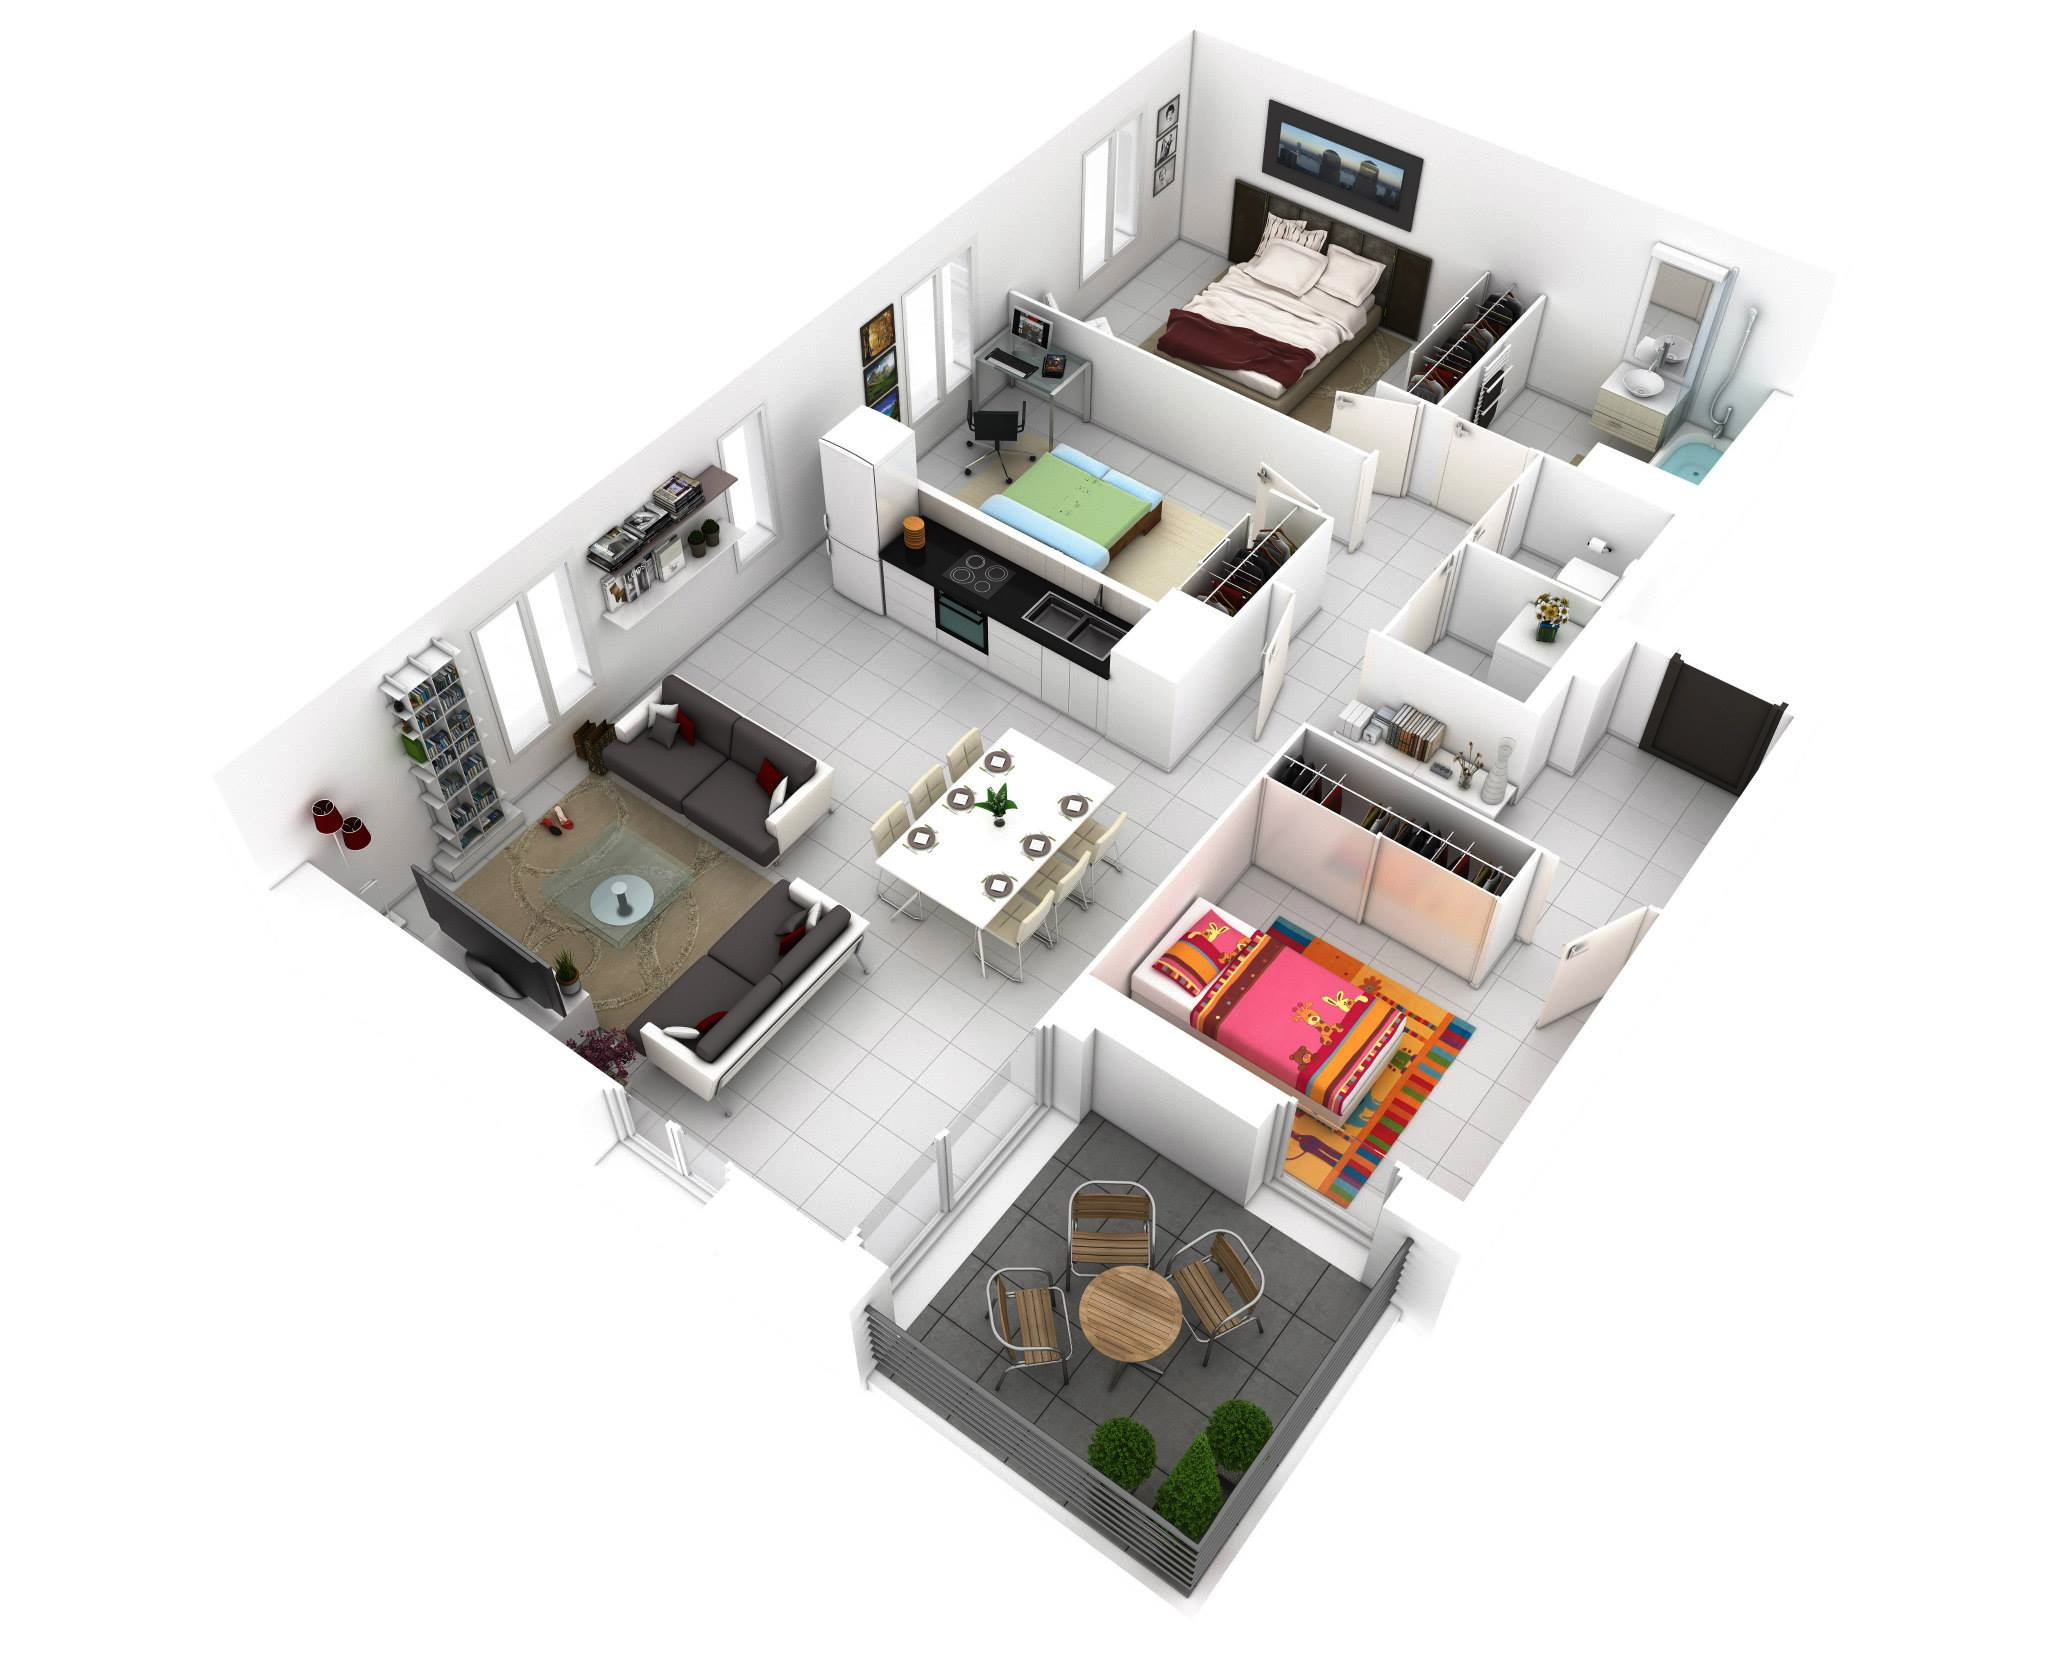 More Bedroom D Floor Plans - 3 bedroom 2 bathroom house designs